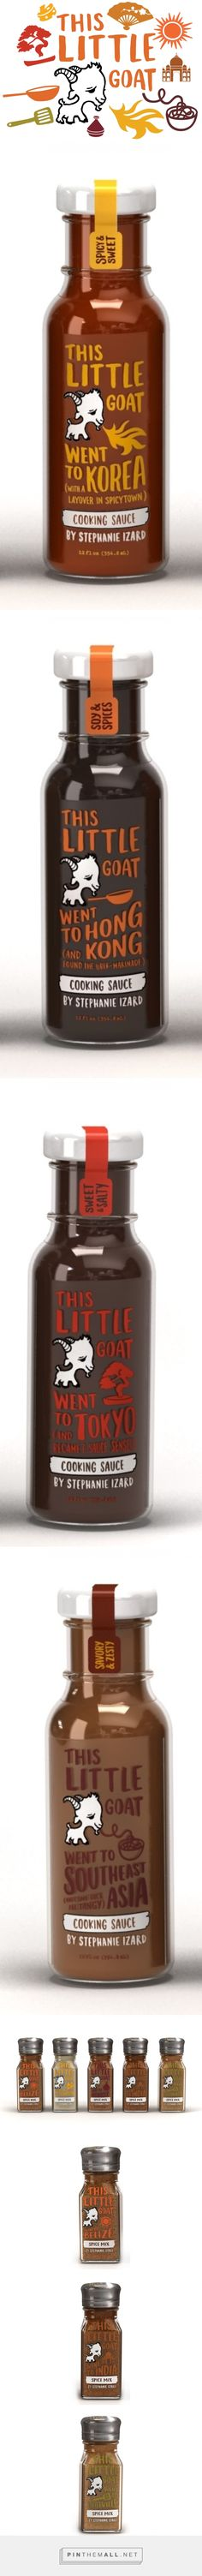 This Little Goat cooking sauces and spices. Source www.thislittlegoat.com. Pin curated by #SFields99 #packaging #design #food #branding #sauce #spices